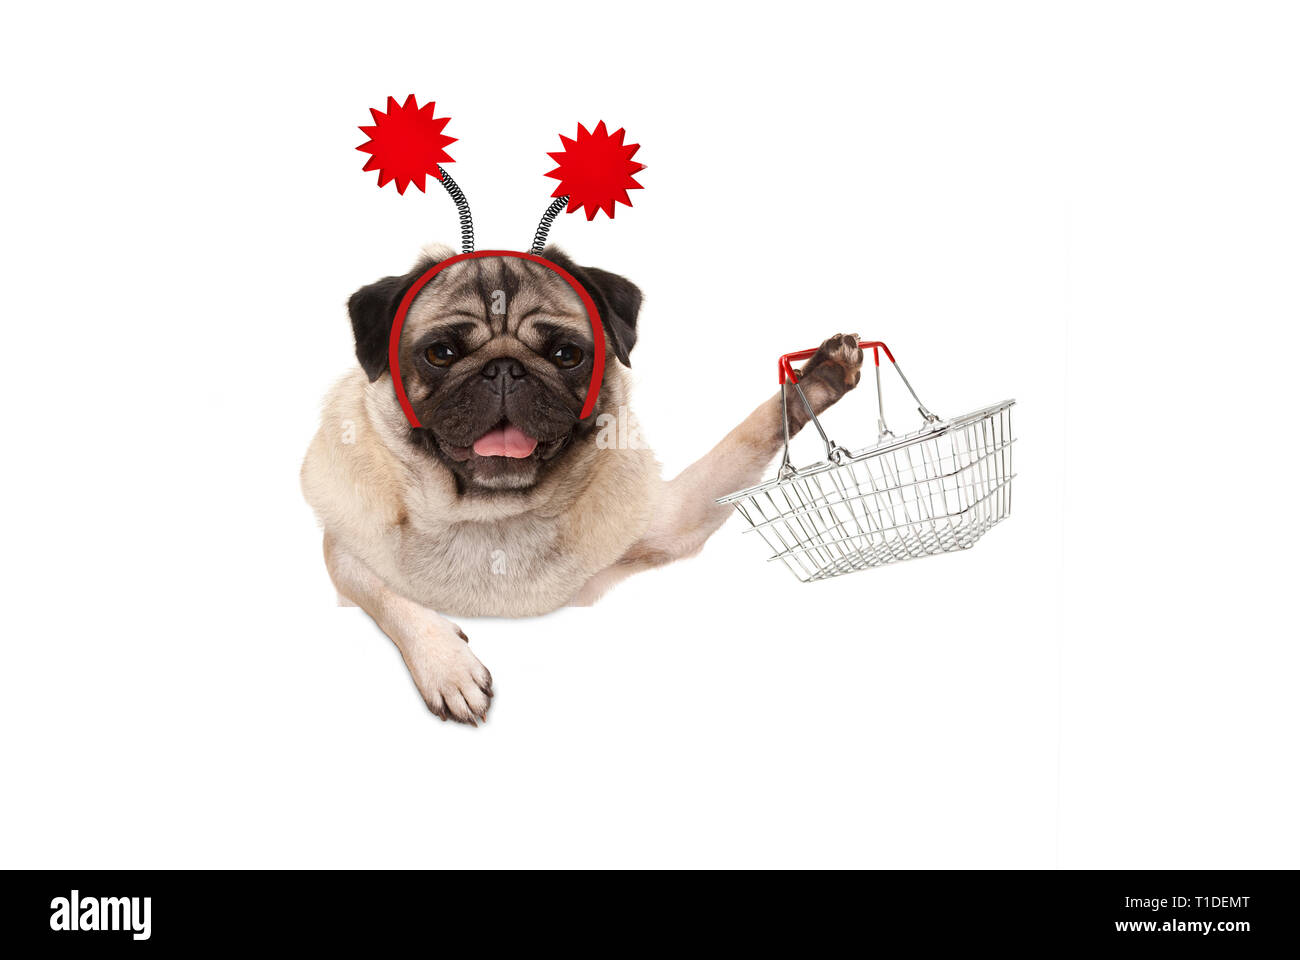 happy smiling pug puppy dog holding up wire metal shopping basket, wearing red diadem, isolated on white background Stock Photo